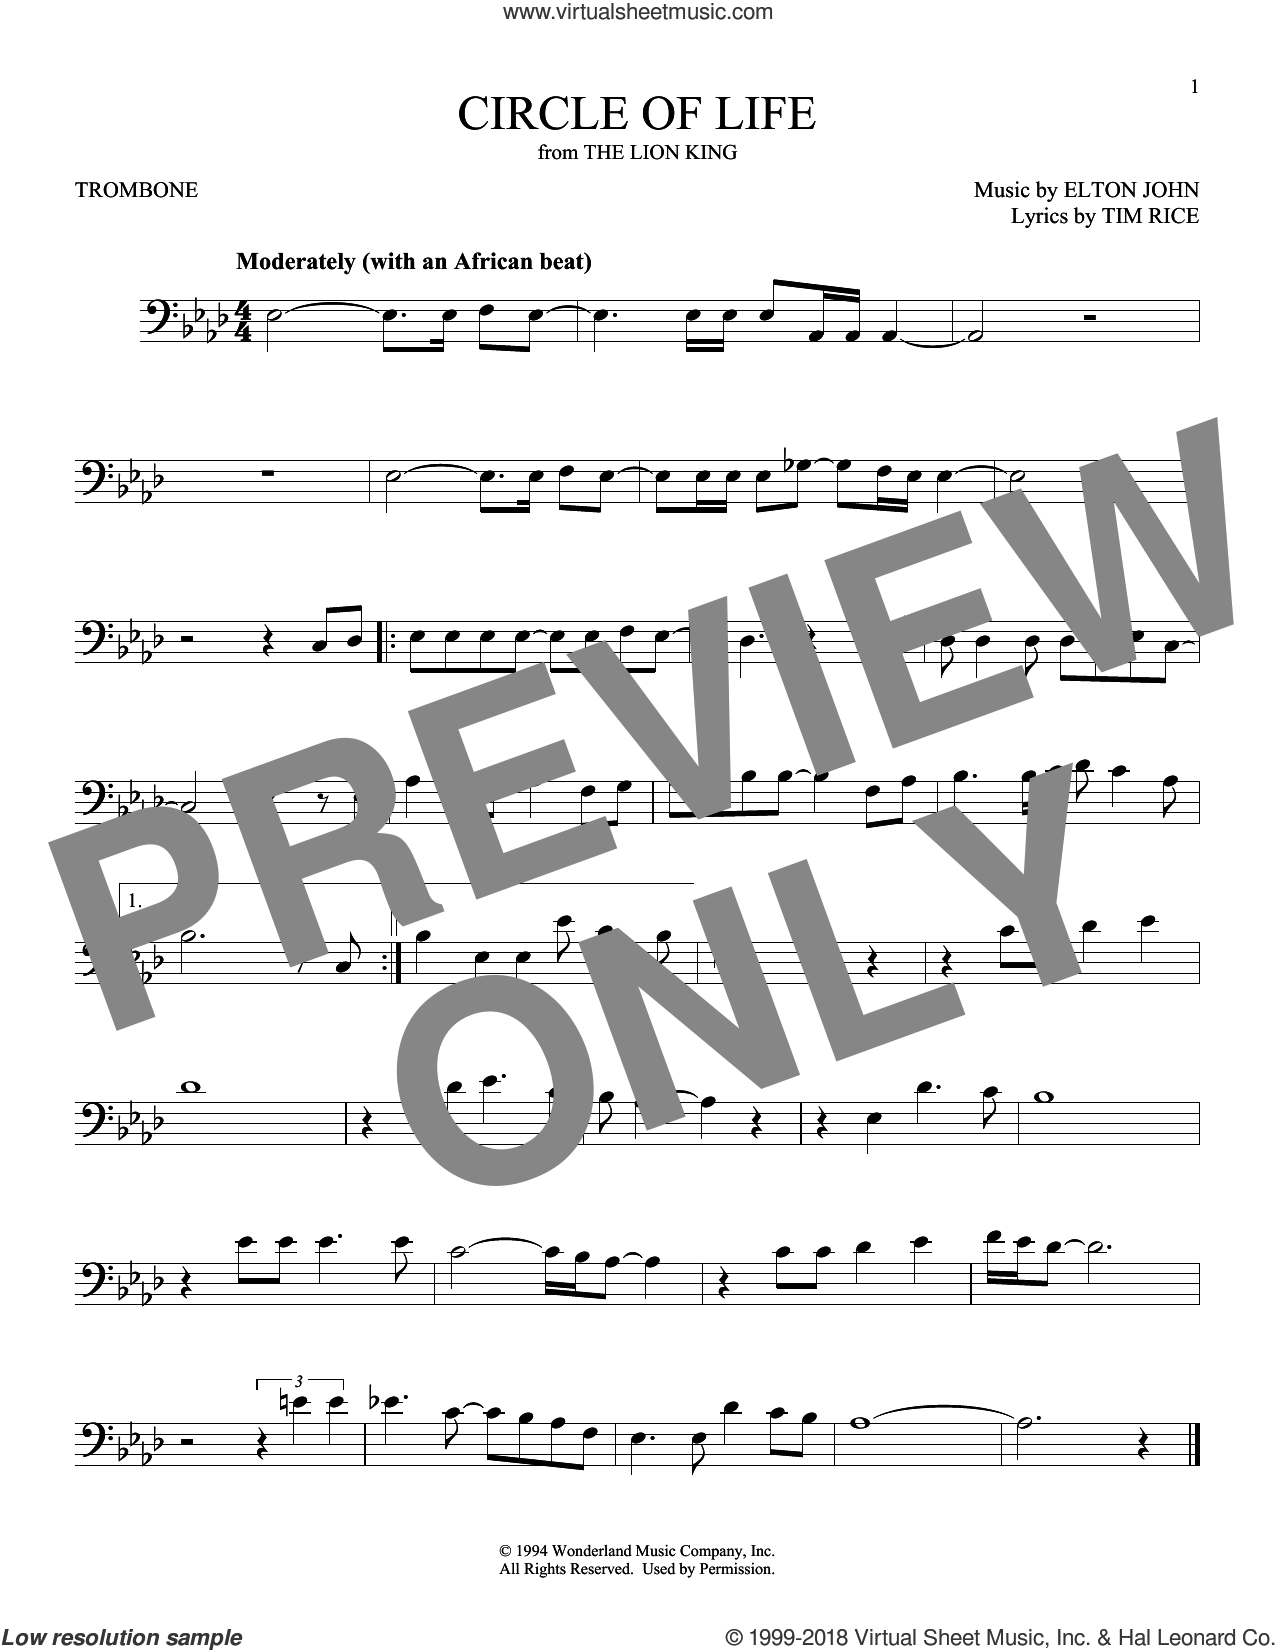 Circle Of Life sheet music for trombone solo by Elton John and Tim Rice, intermediate